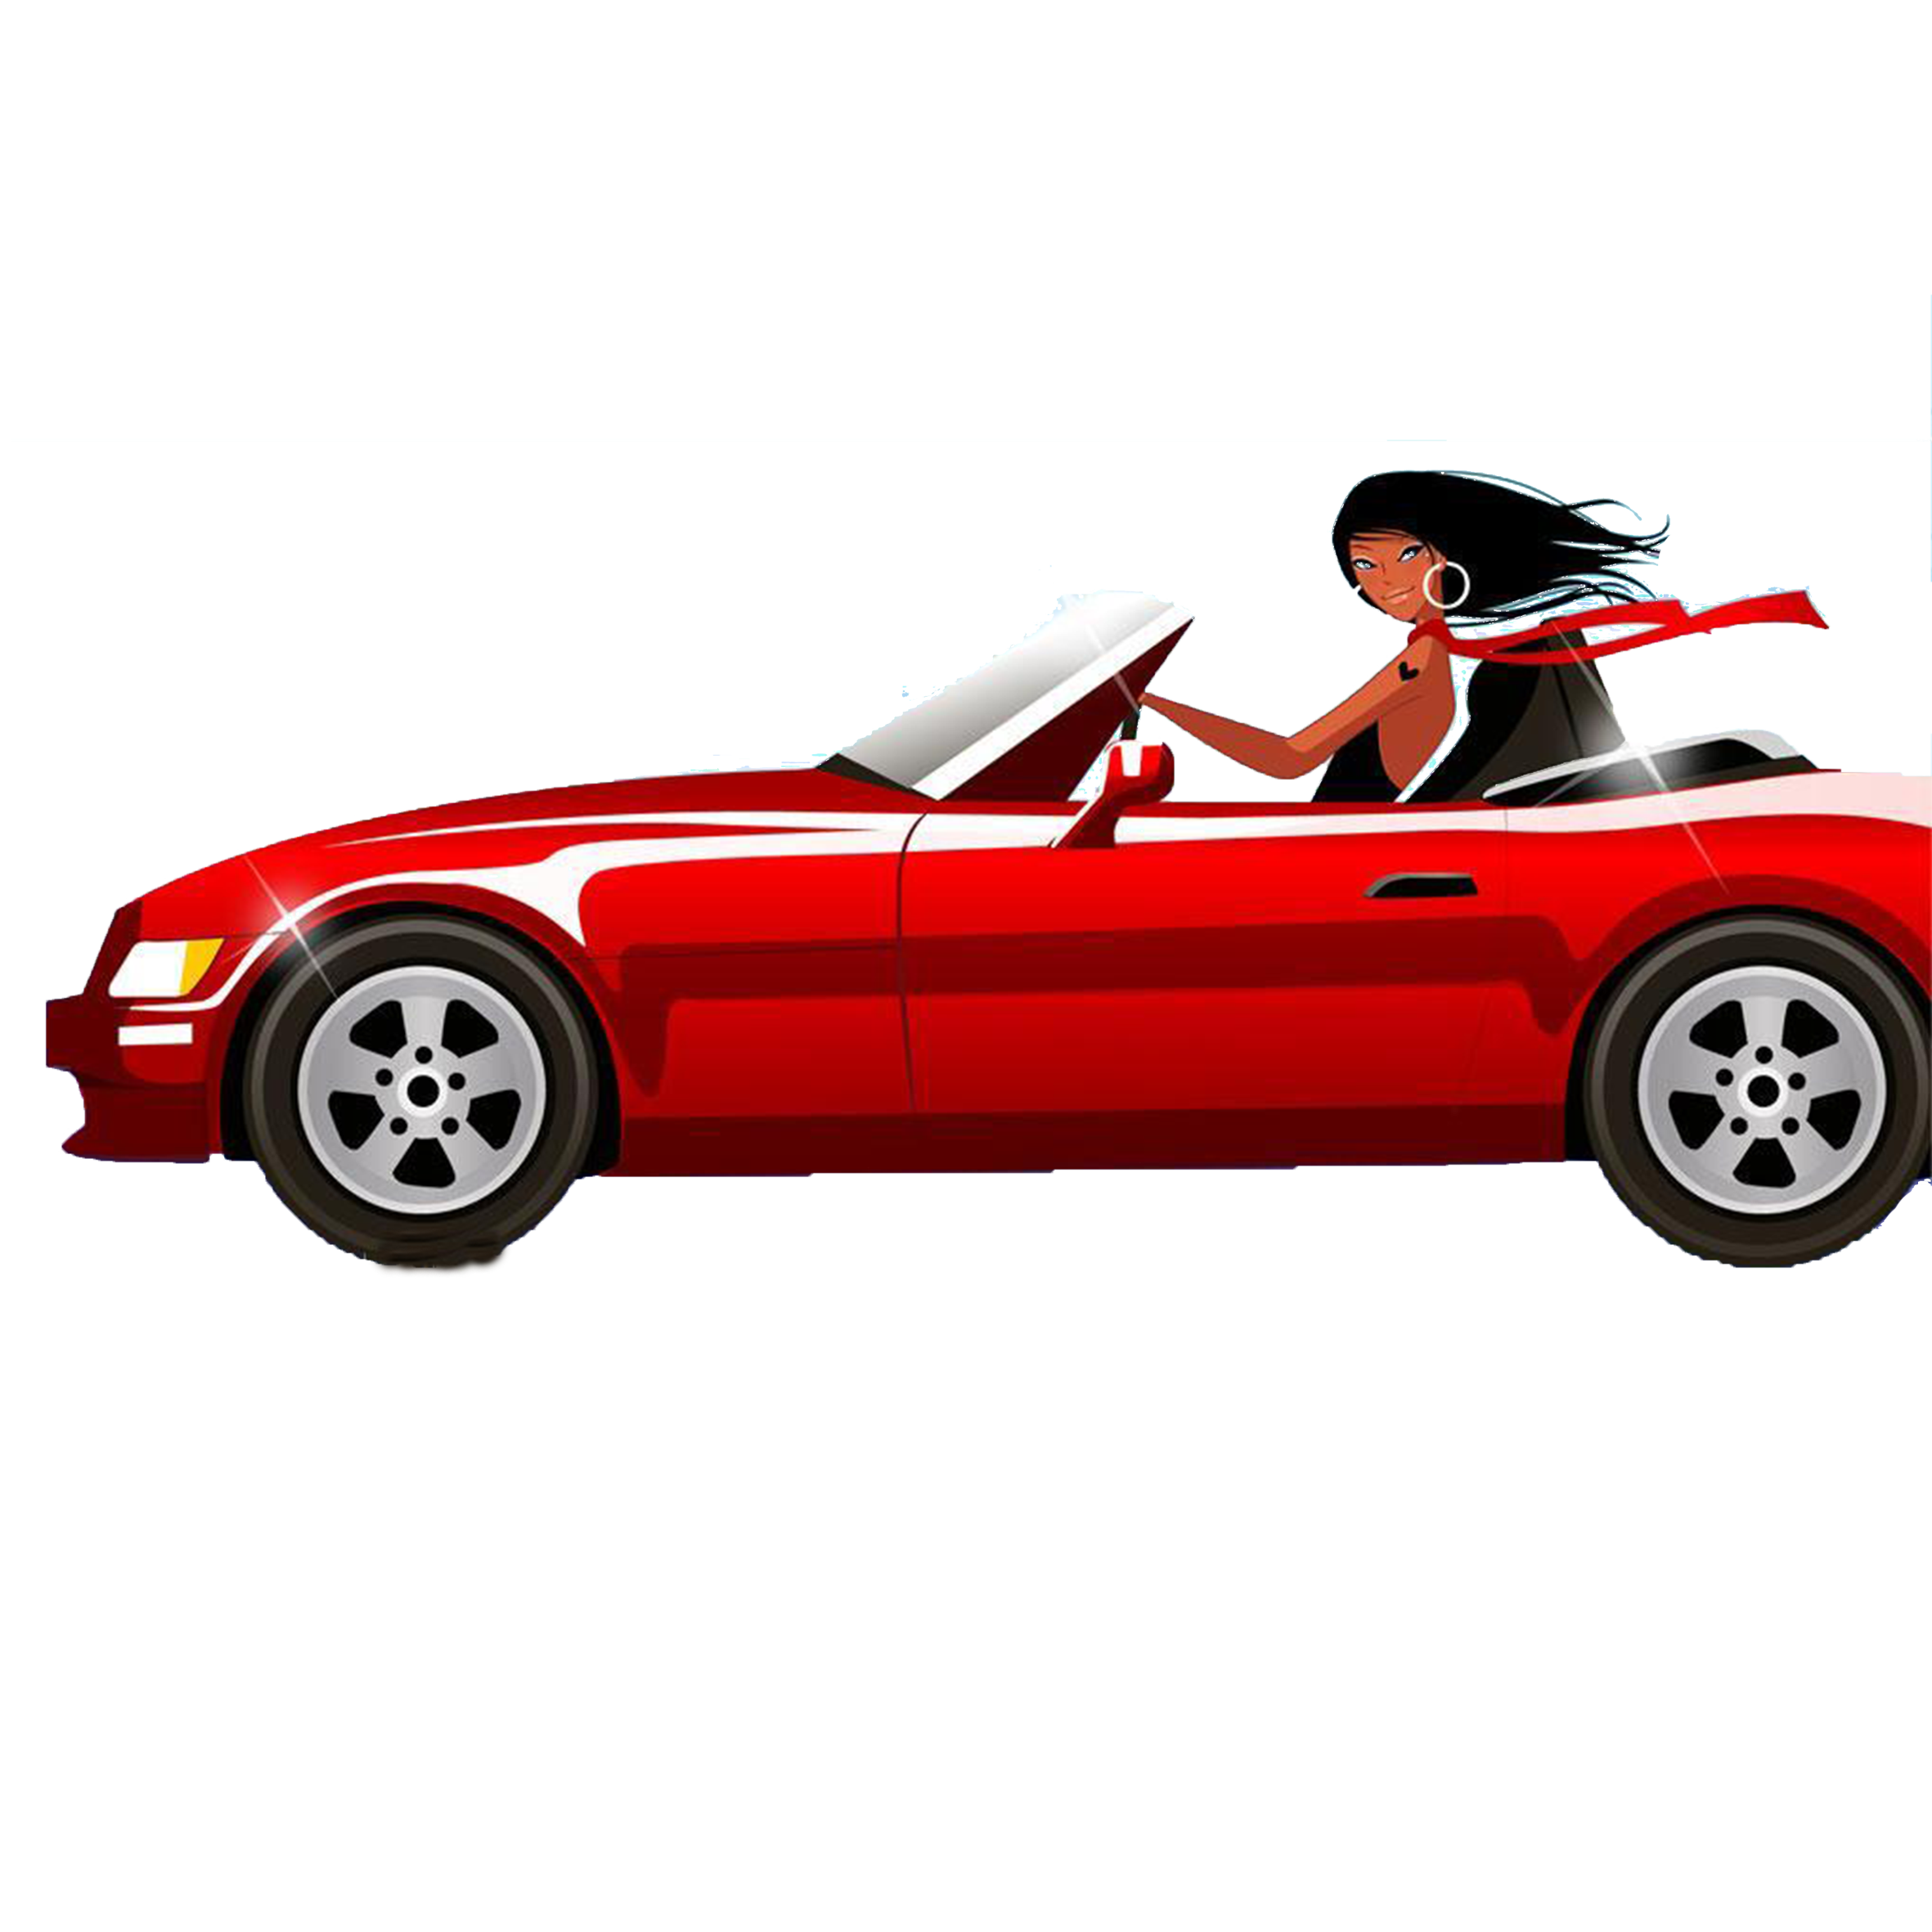 Free clipart driving car graphic freeuse stock Woman Driving Royalty-free Clip art - Sports car girl 2362*2362 ... graphic freeuse stock